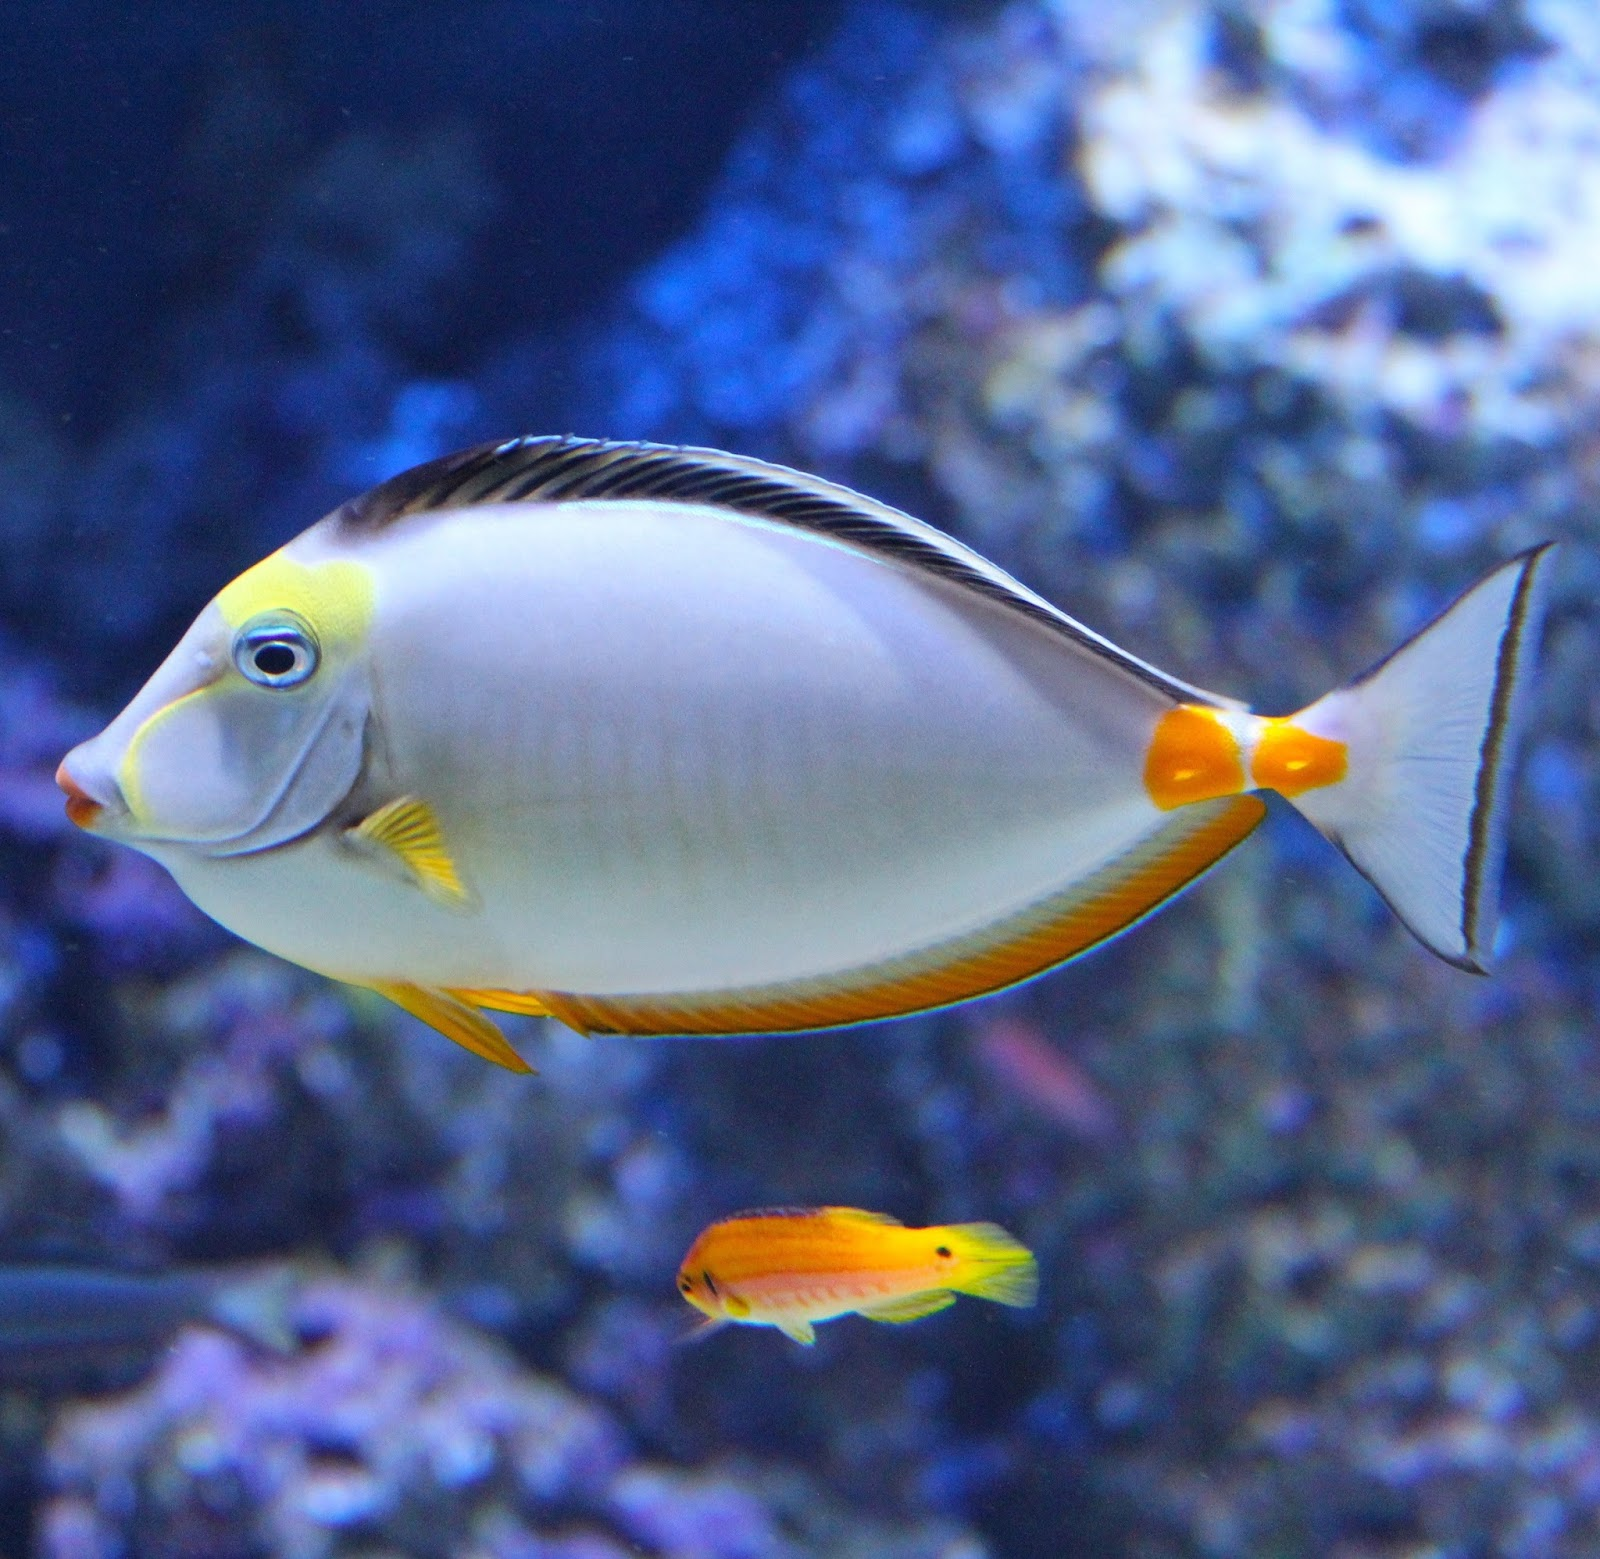 A very beautiful and colorful fish